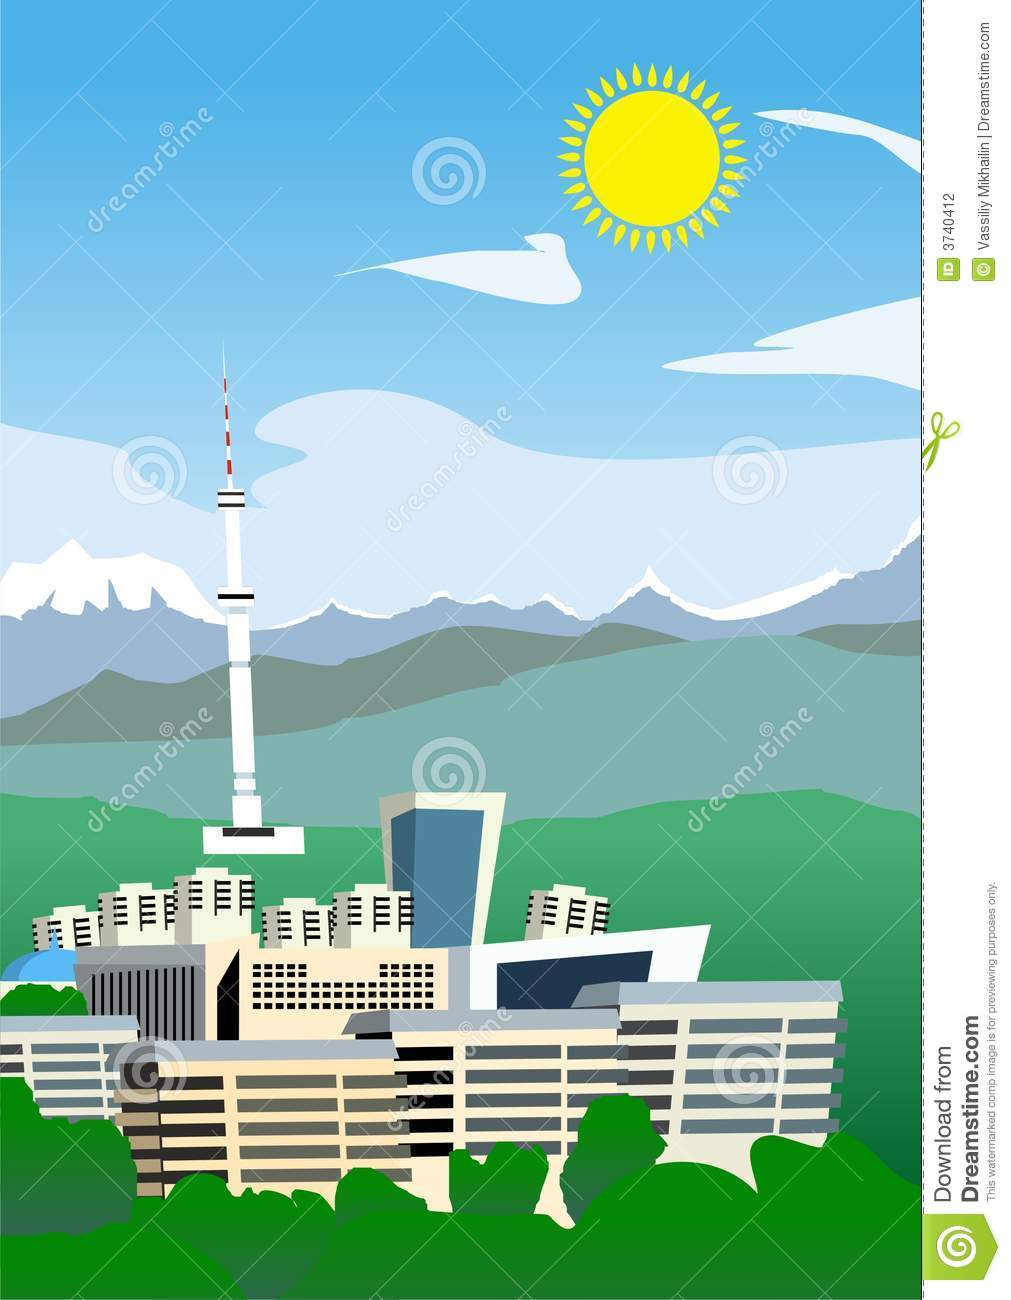 Almaty clipart #20, Download drawings